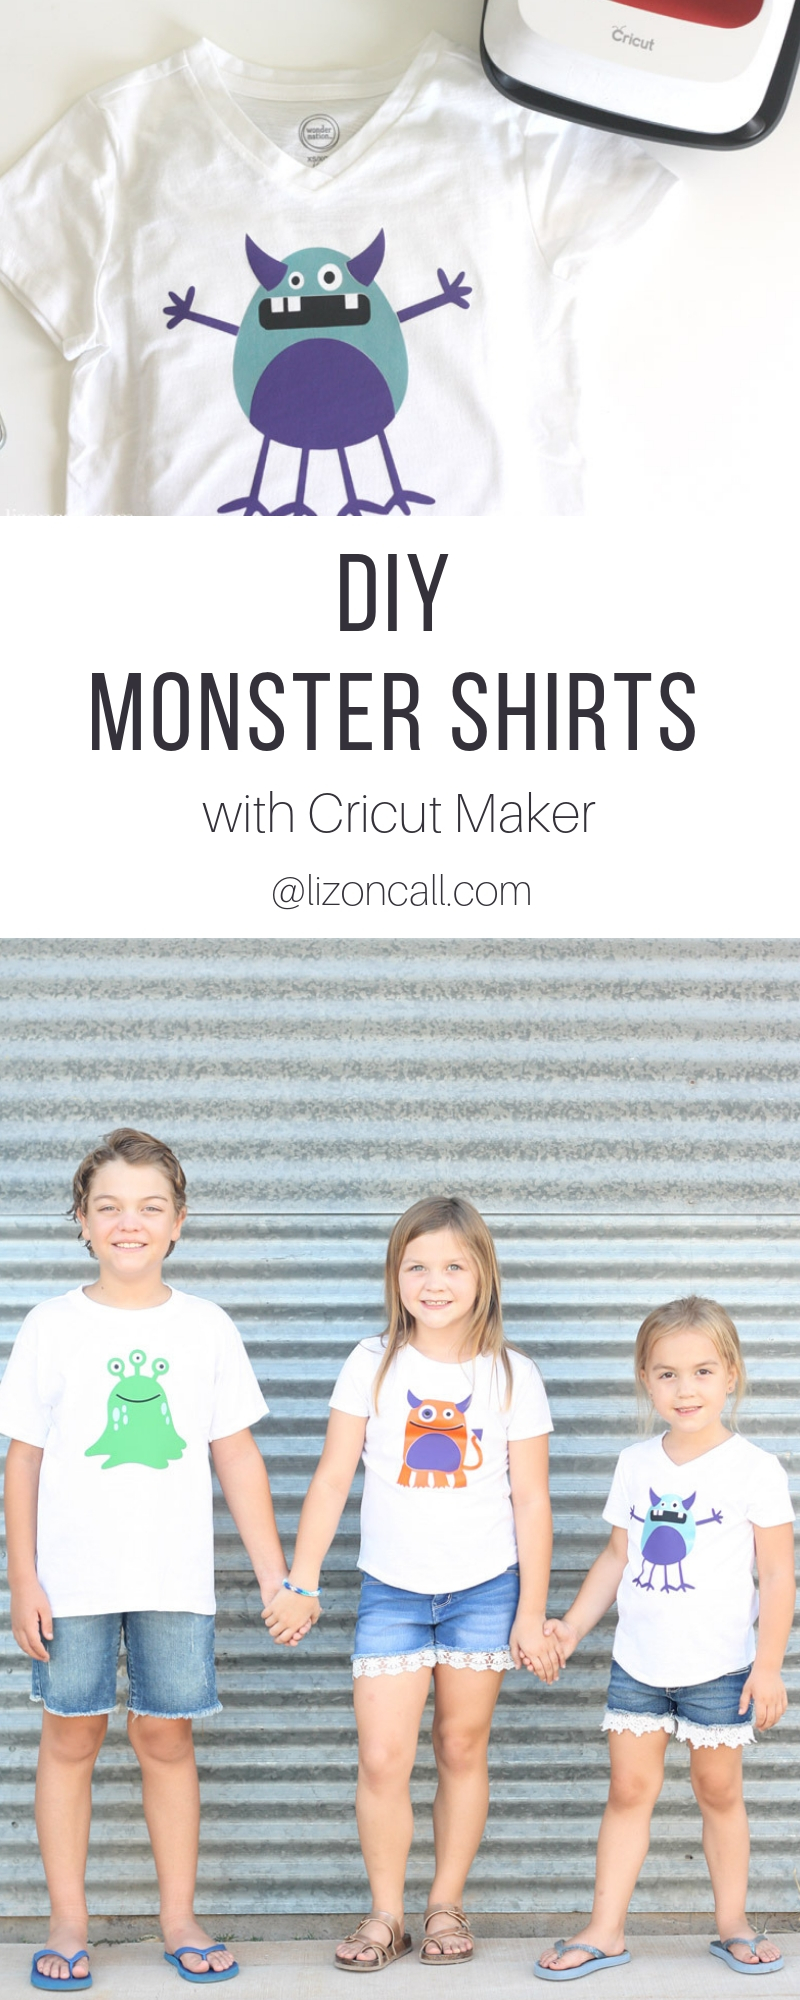 Monsters don't have to be scary. These DIY Monster Shirts feature cute monsters in bright colors and smiling faces that are super cute and not spooky.